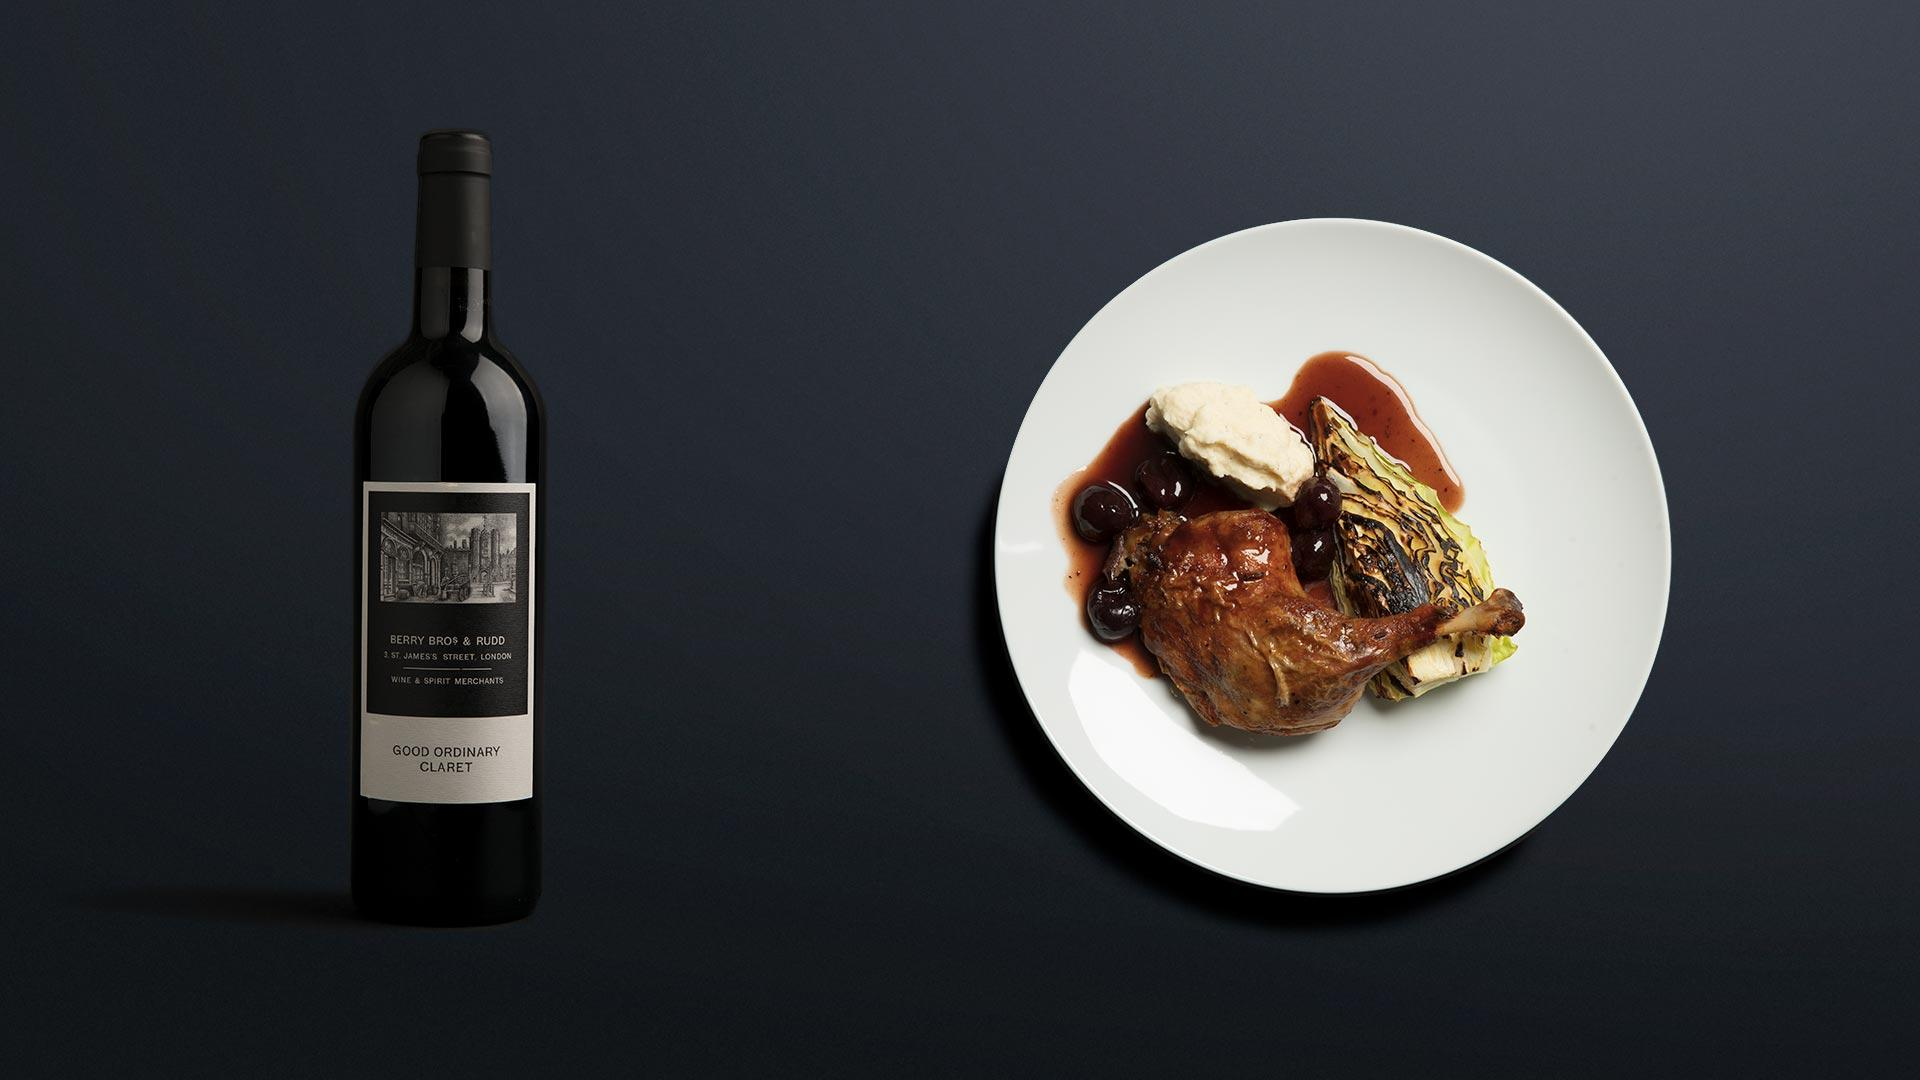 Berry Bros. & Rudd Good Ordinary Claret 2016 with roasted duck and cherries